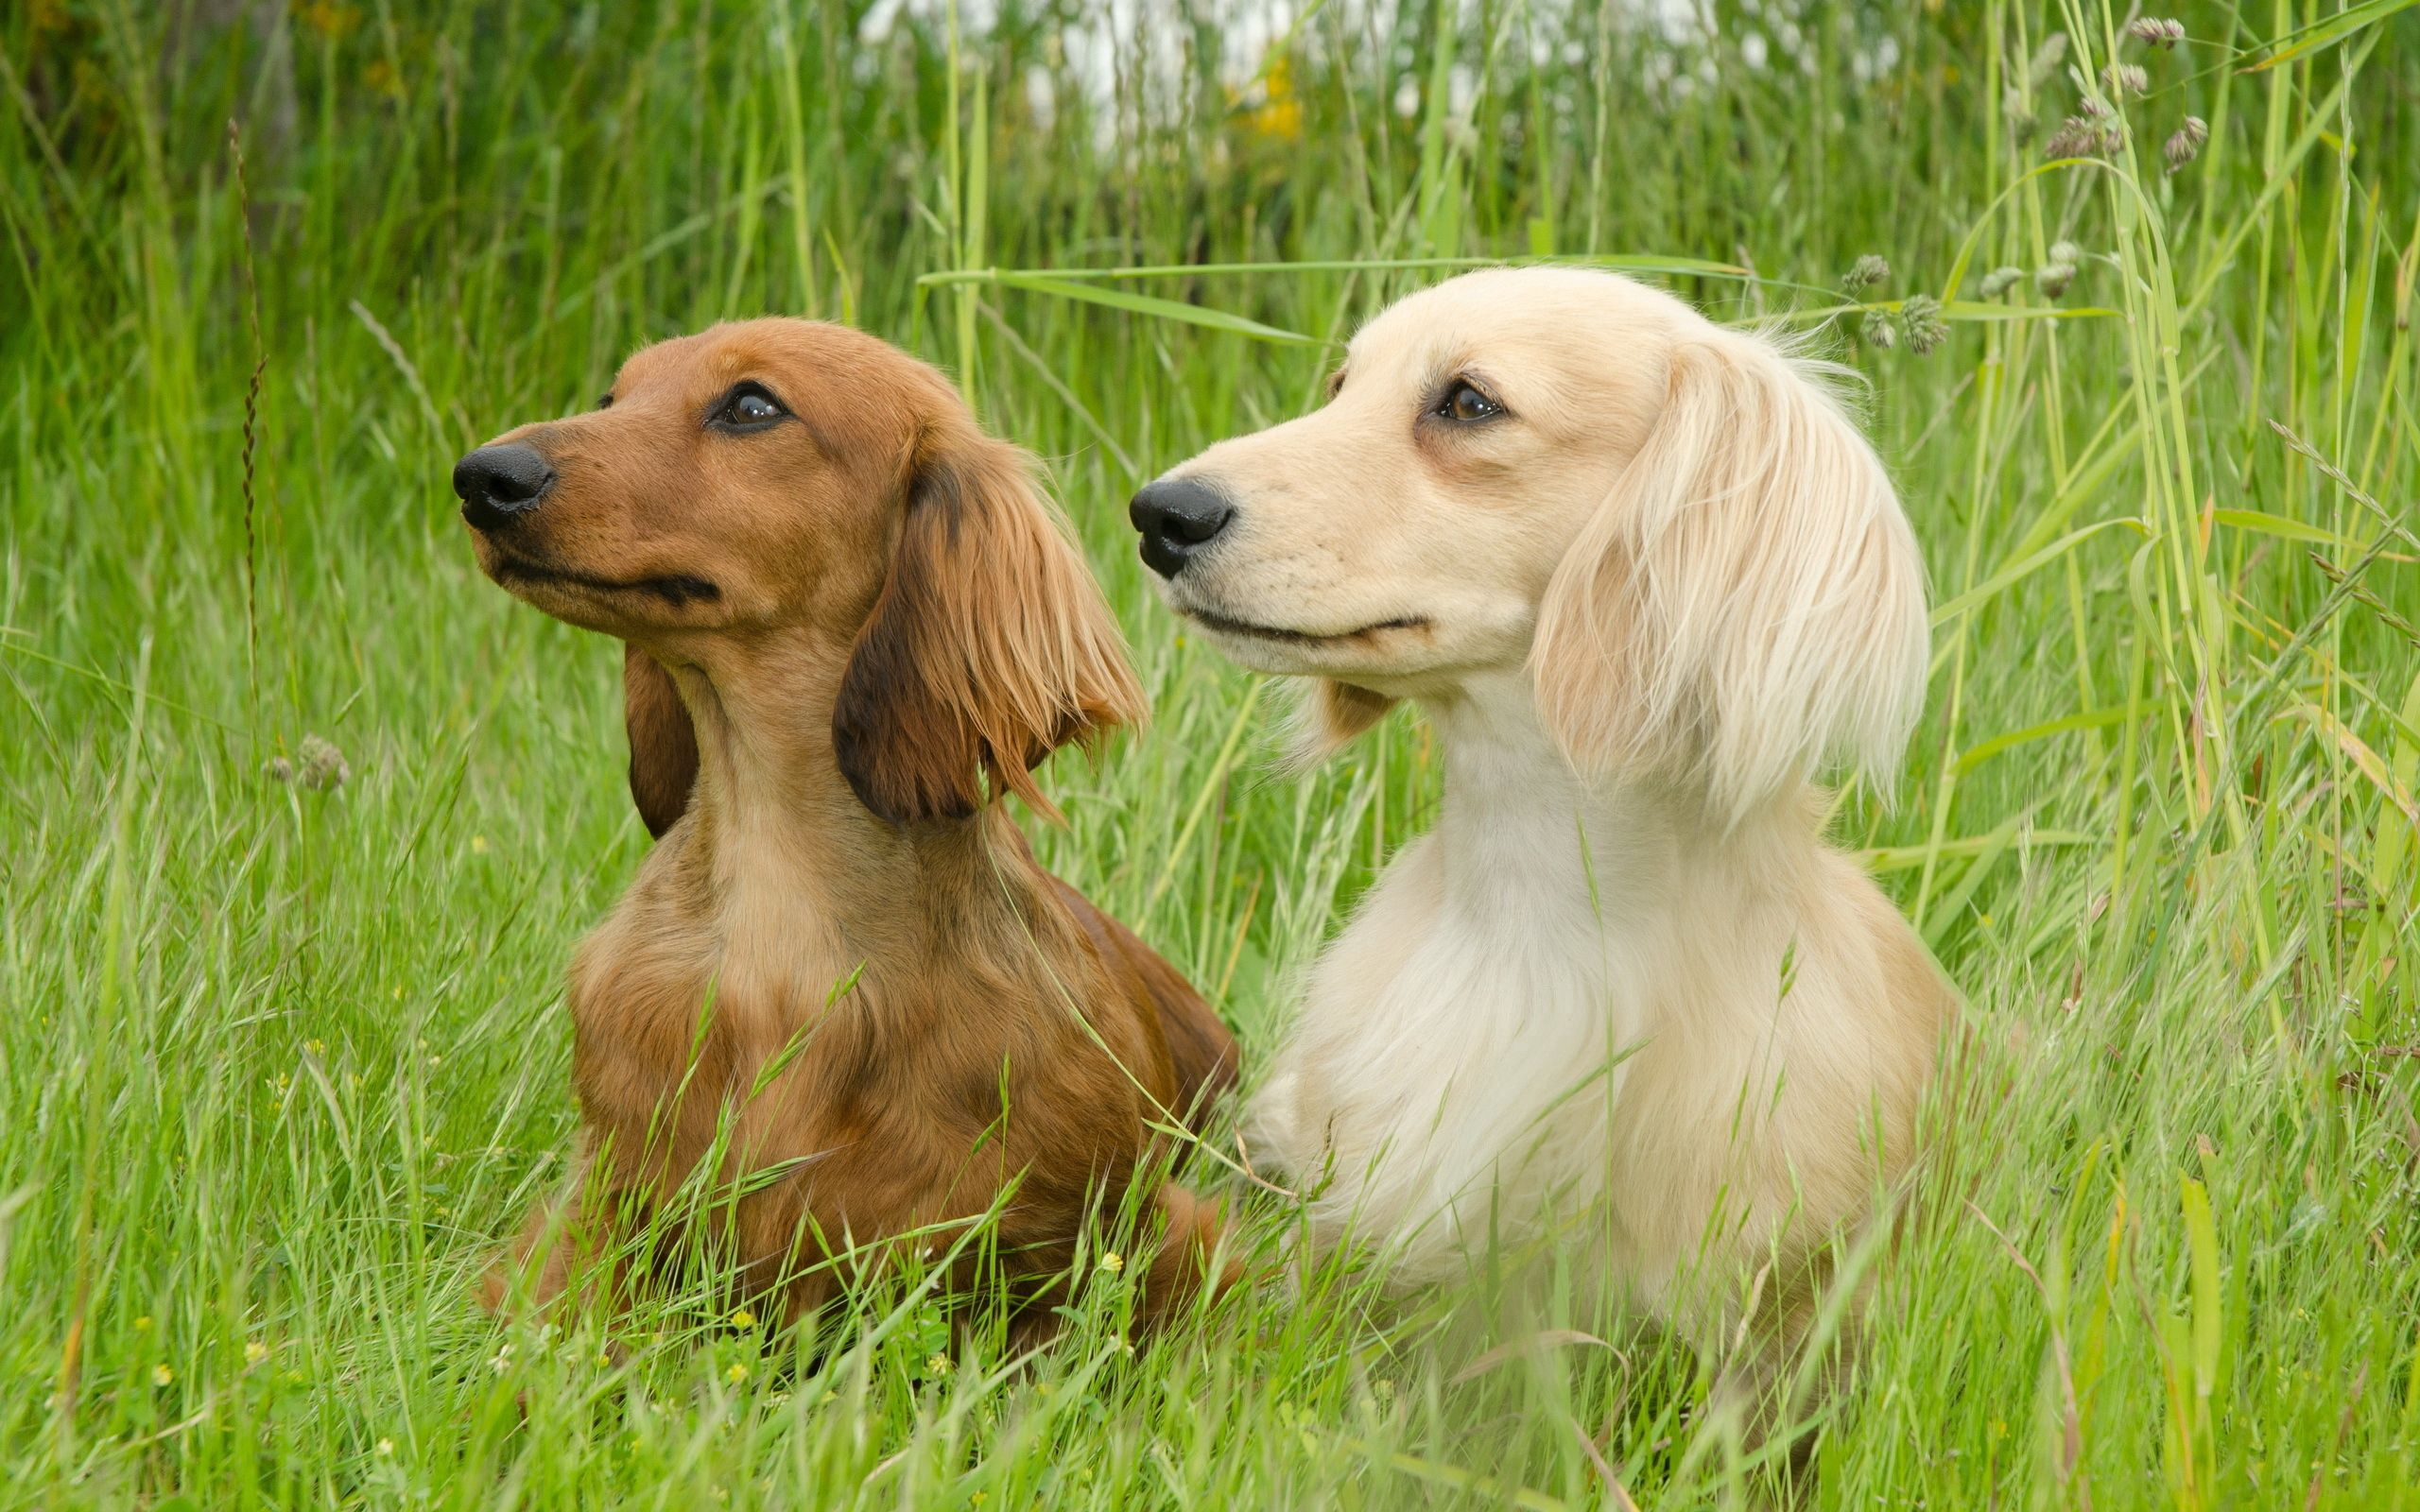 122847 download wallpaper Animals, Dogs, Dachshund, Grass, Stroll, Couple, Pair, Fluffy screensavers and pictures for free